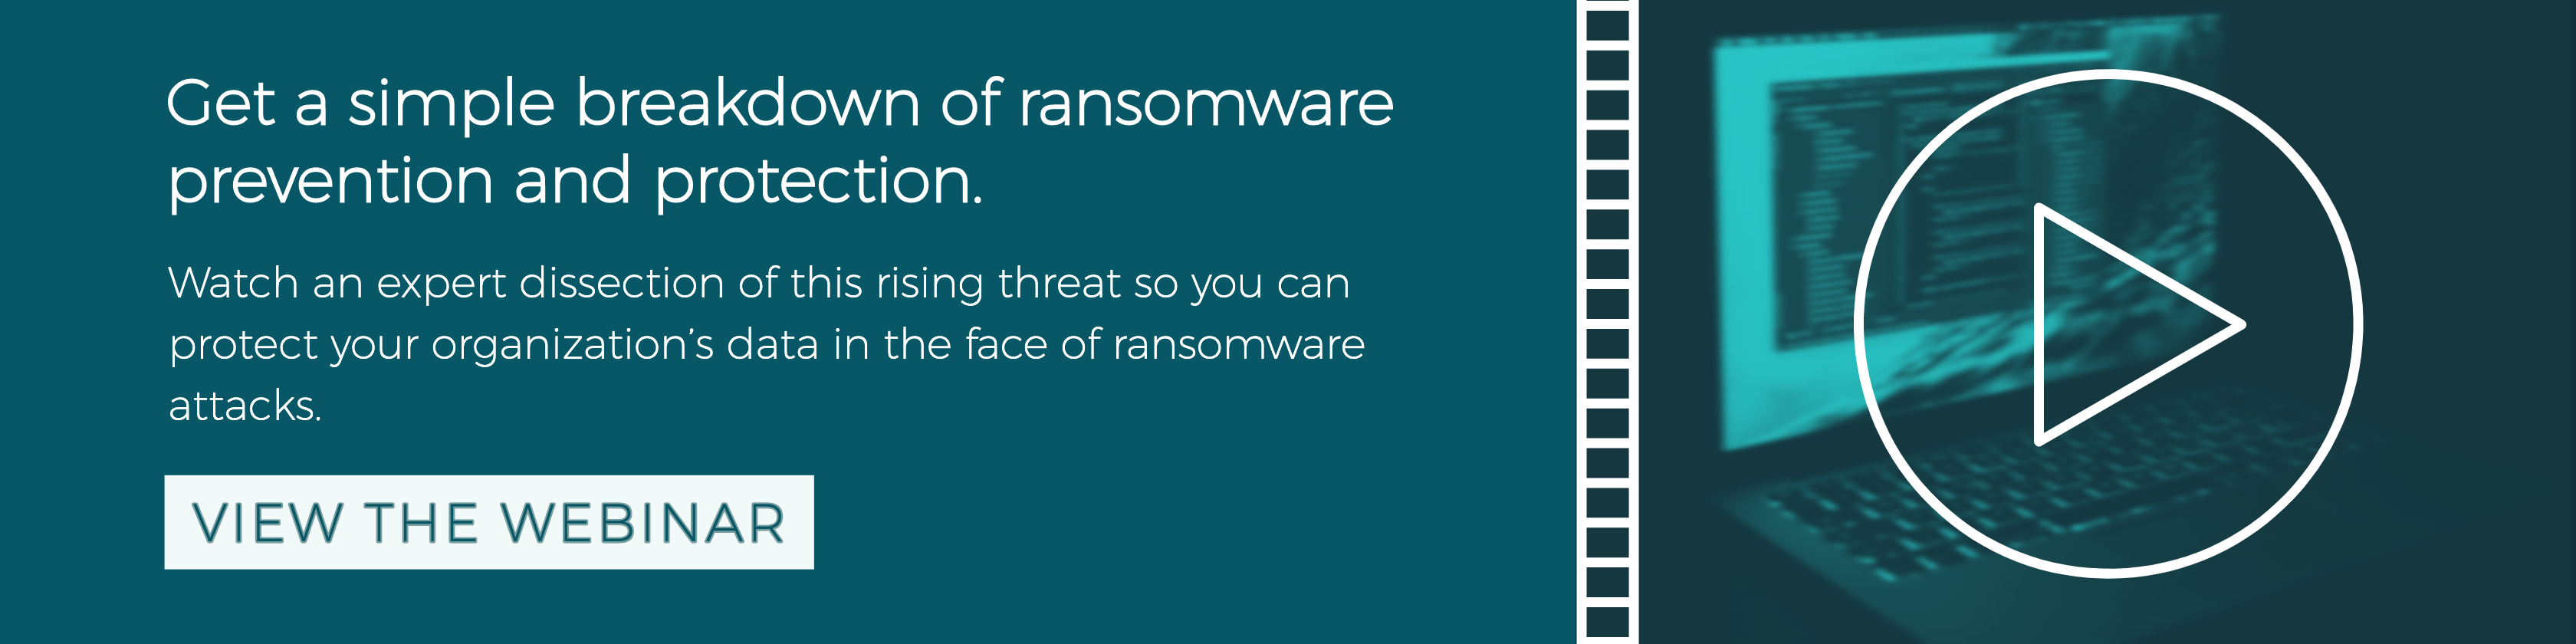 Click here to watch a simple breakdown of ransomware prevention and protection.